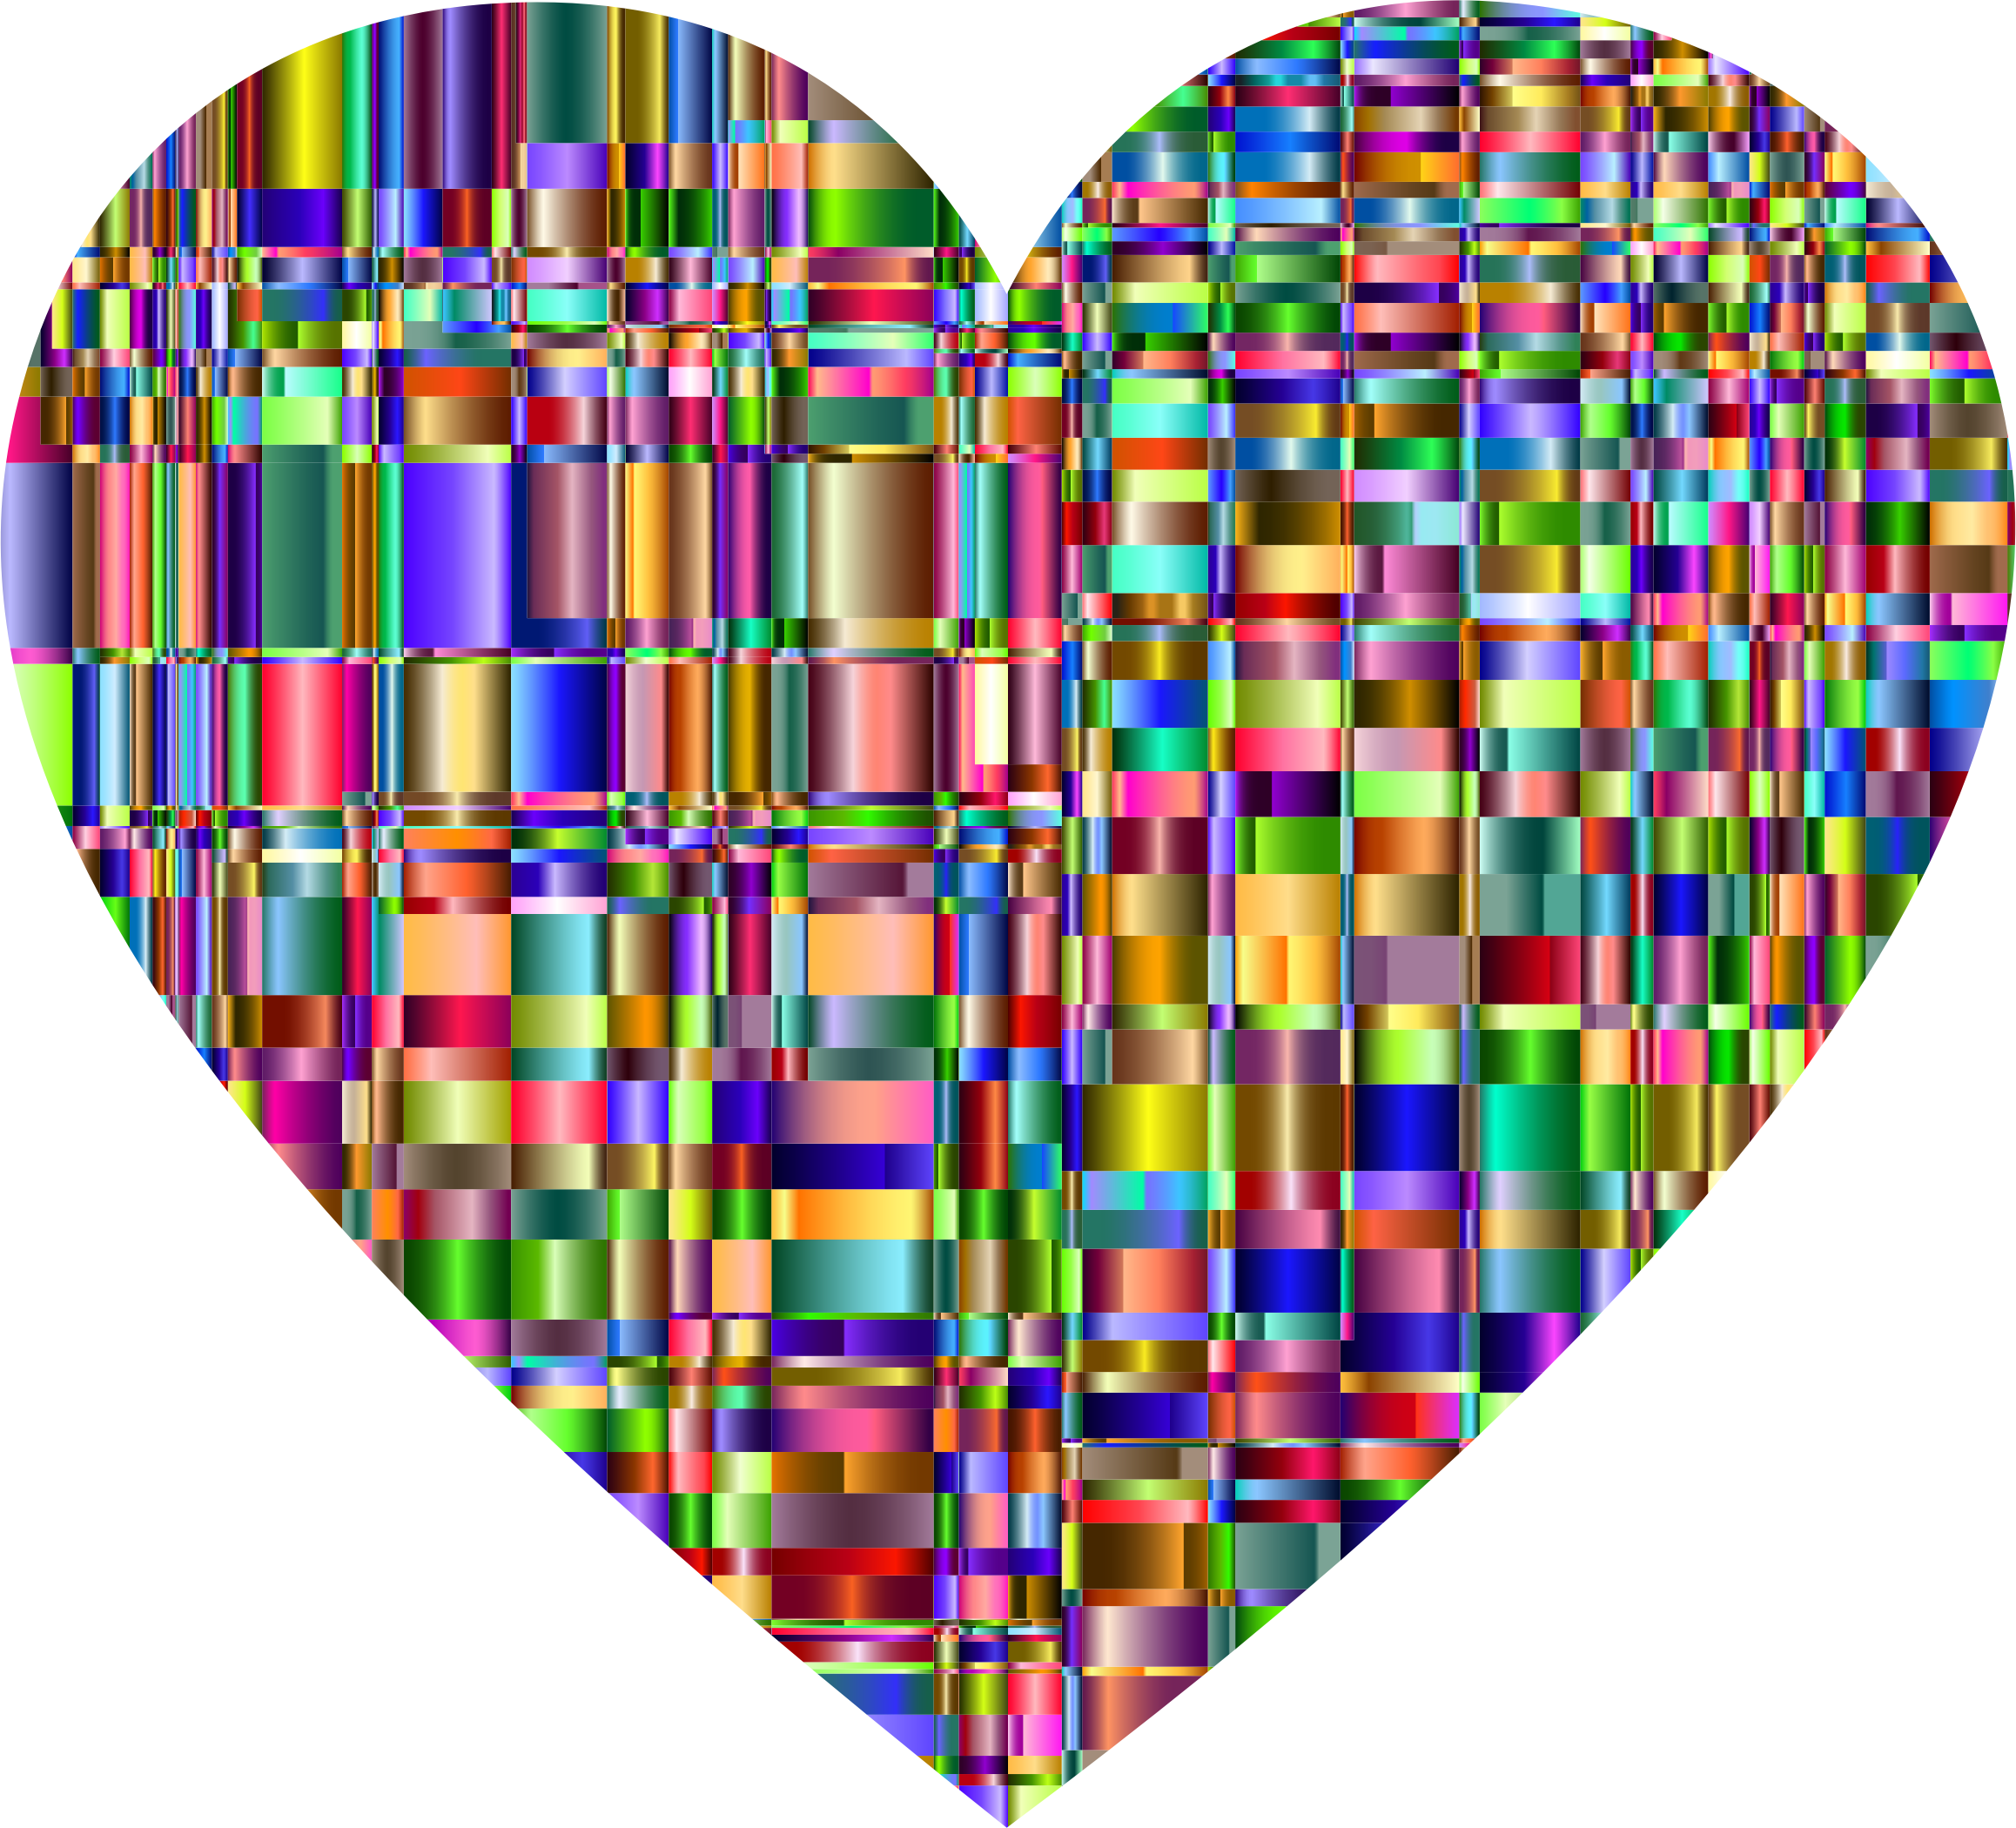 Checkered Chromatic Heart by GDJ